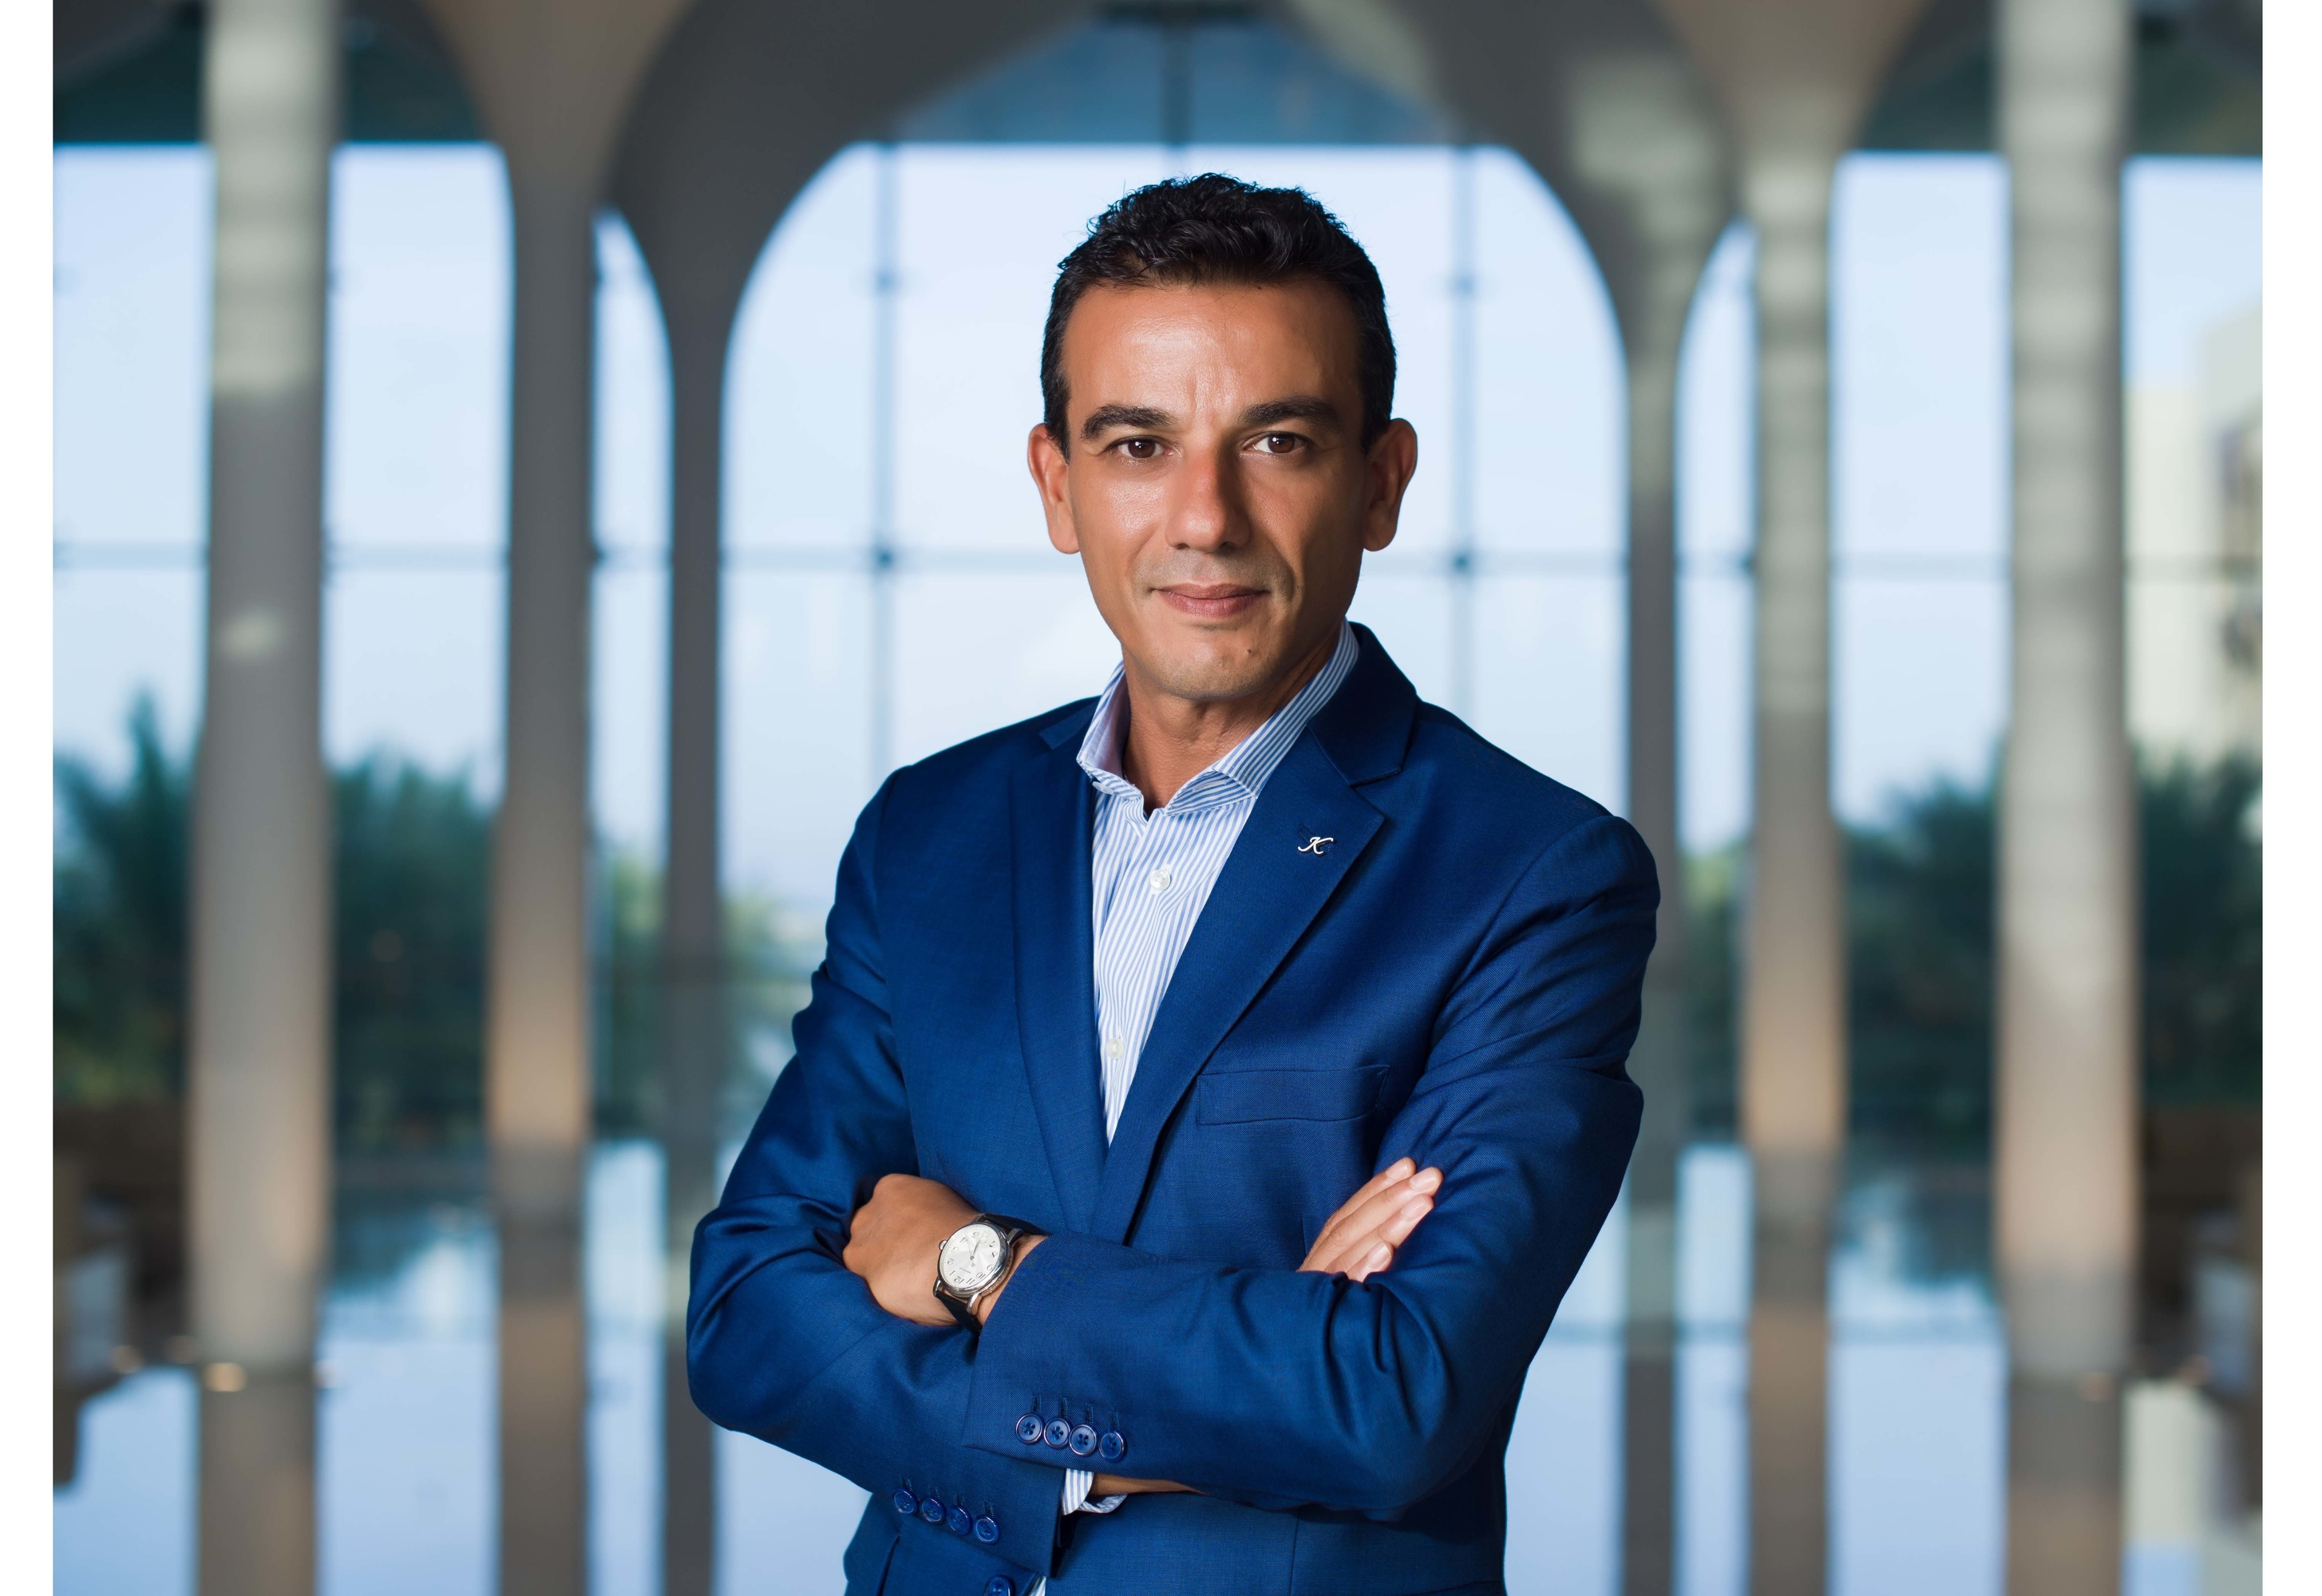 Kempinski Hotel Muscat appoints director of sales and marketing